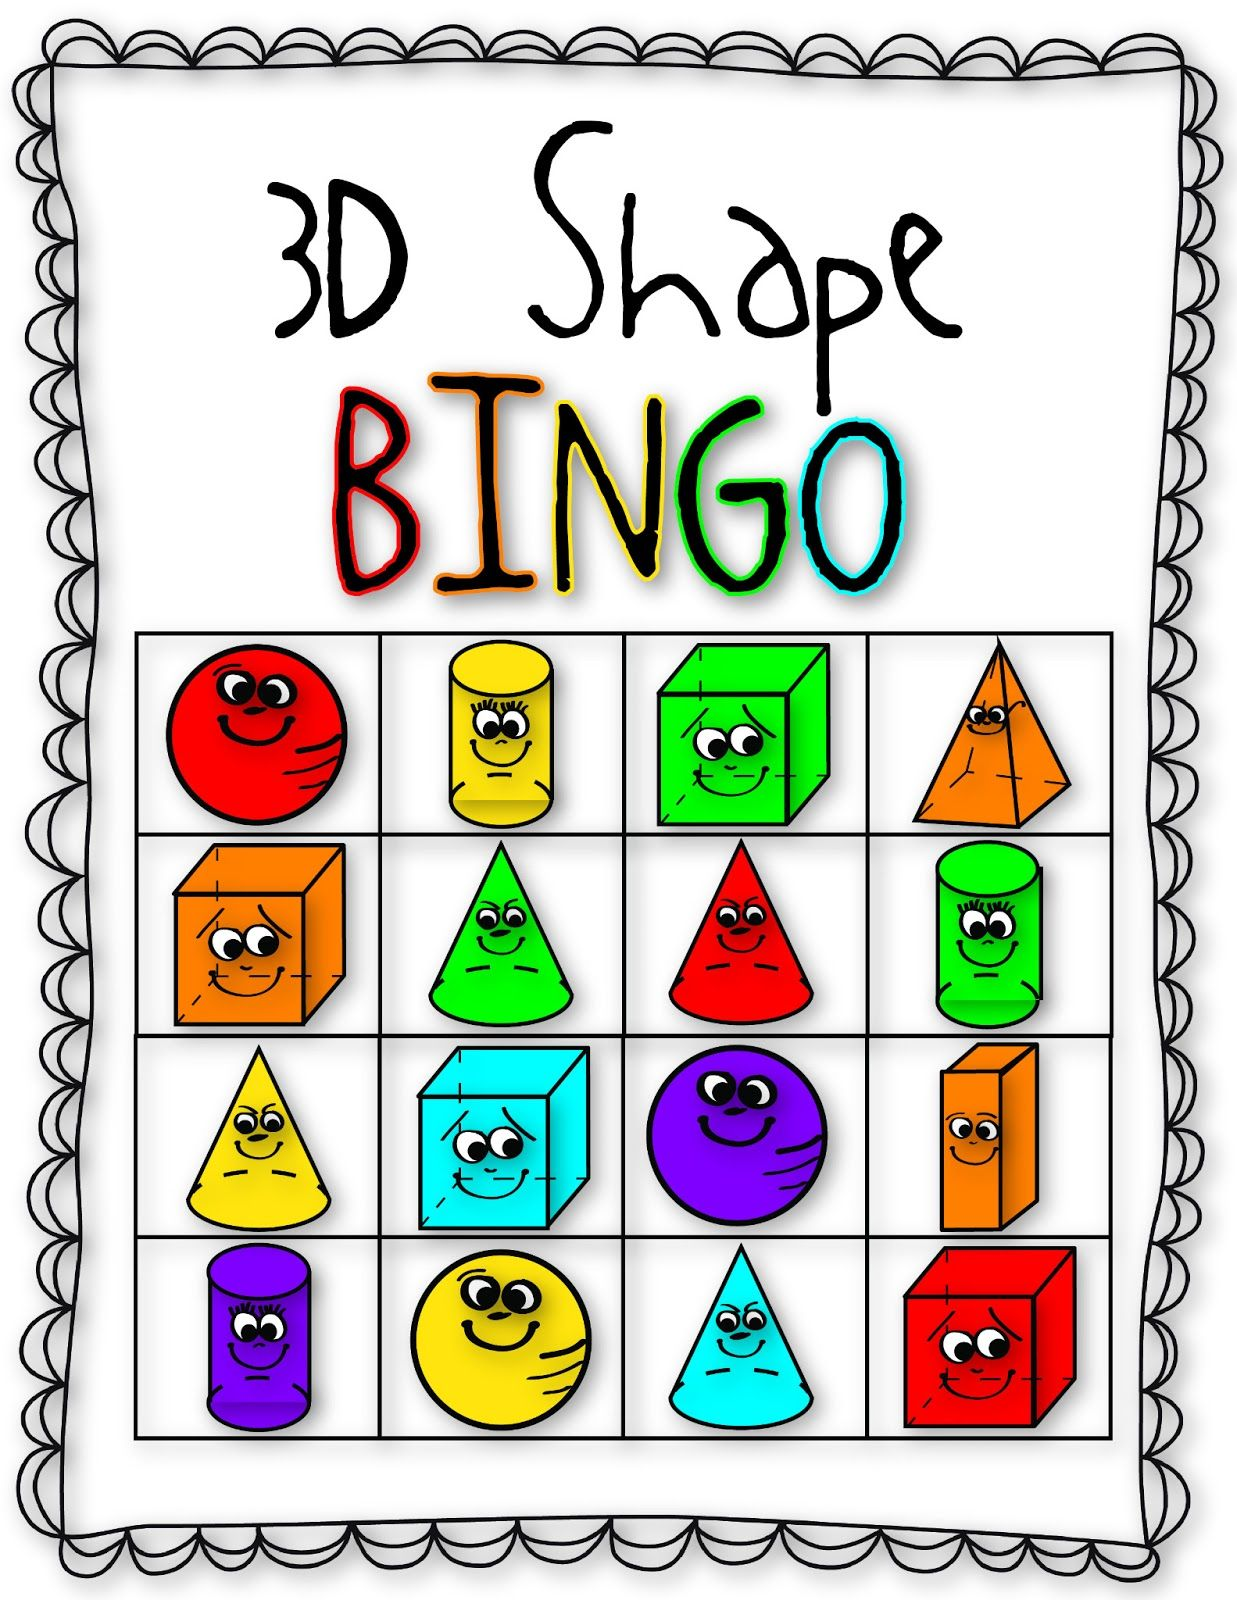 Fall Into First: 3D Shape Fun!.